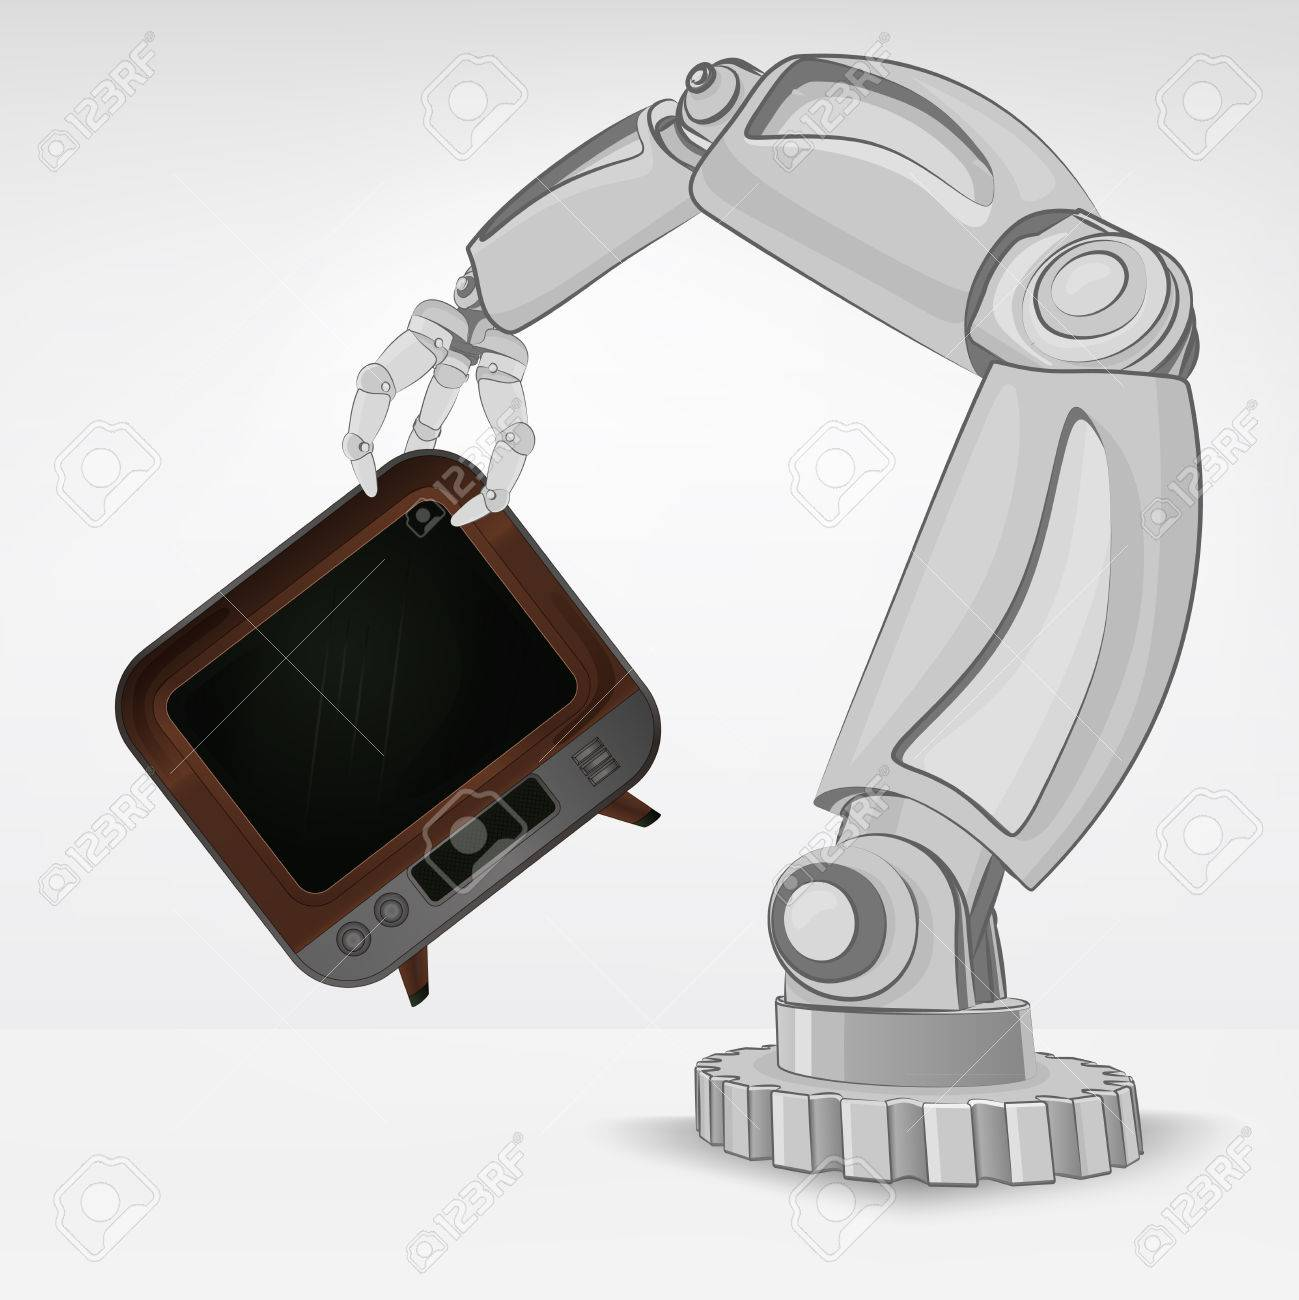 television channel hold by automated robotic hand vector illustration Stock Vector - 26641050